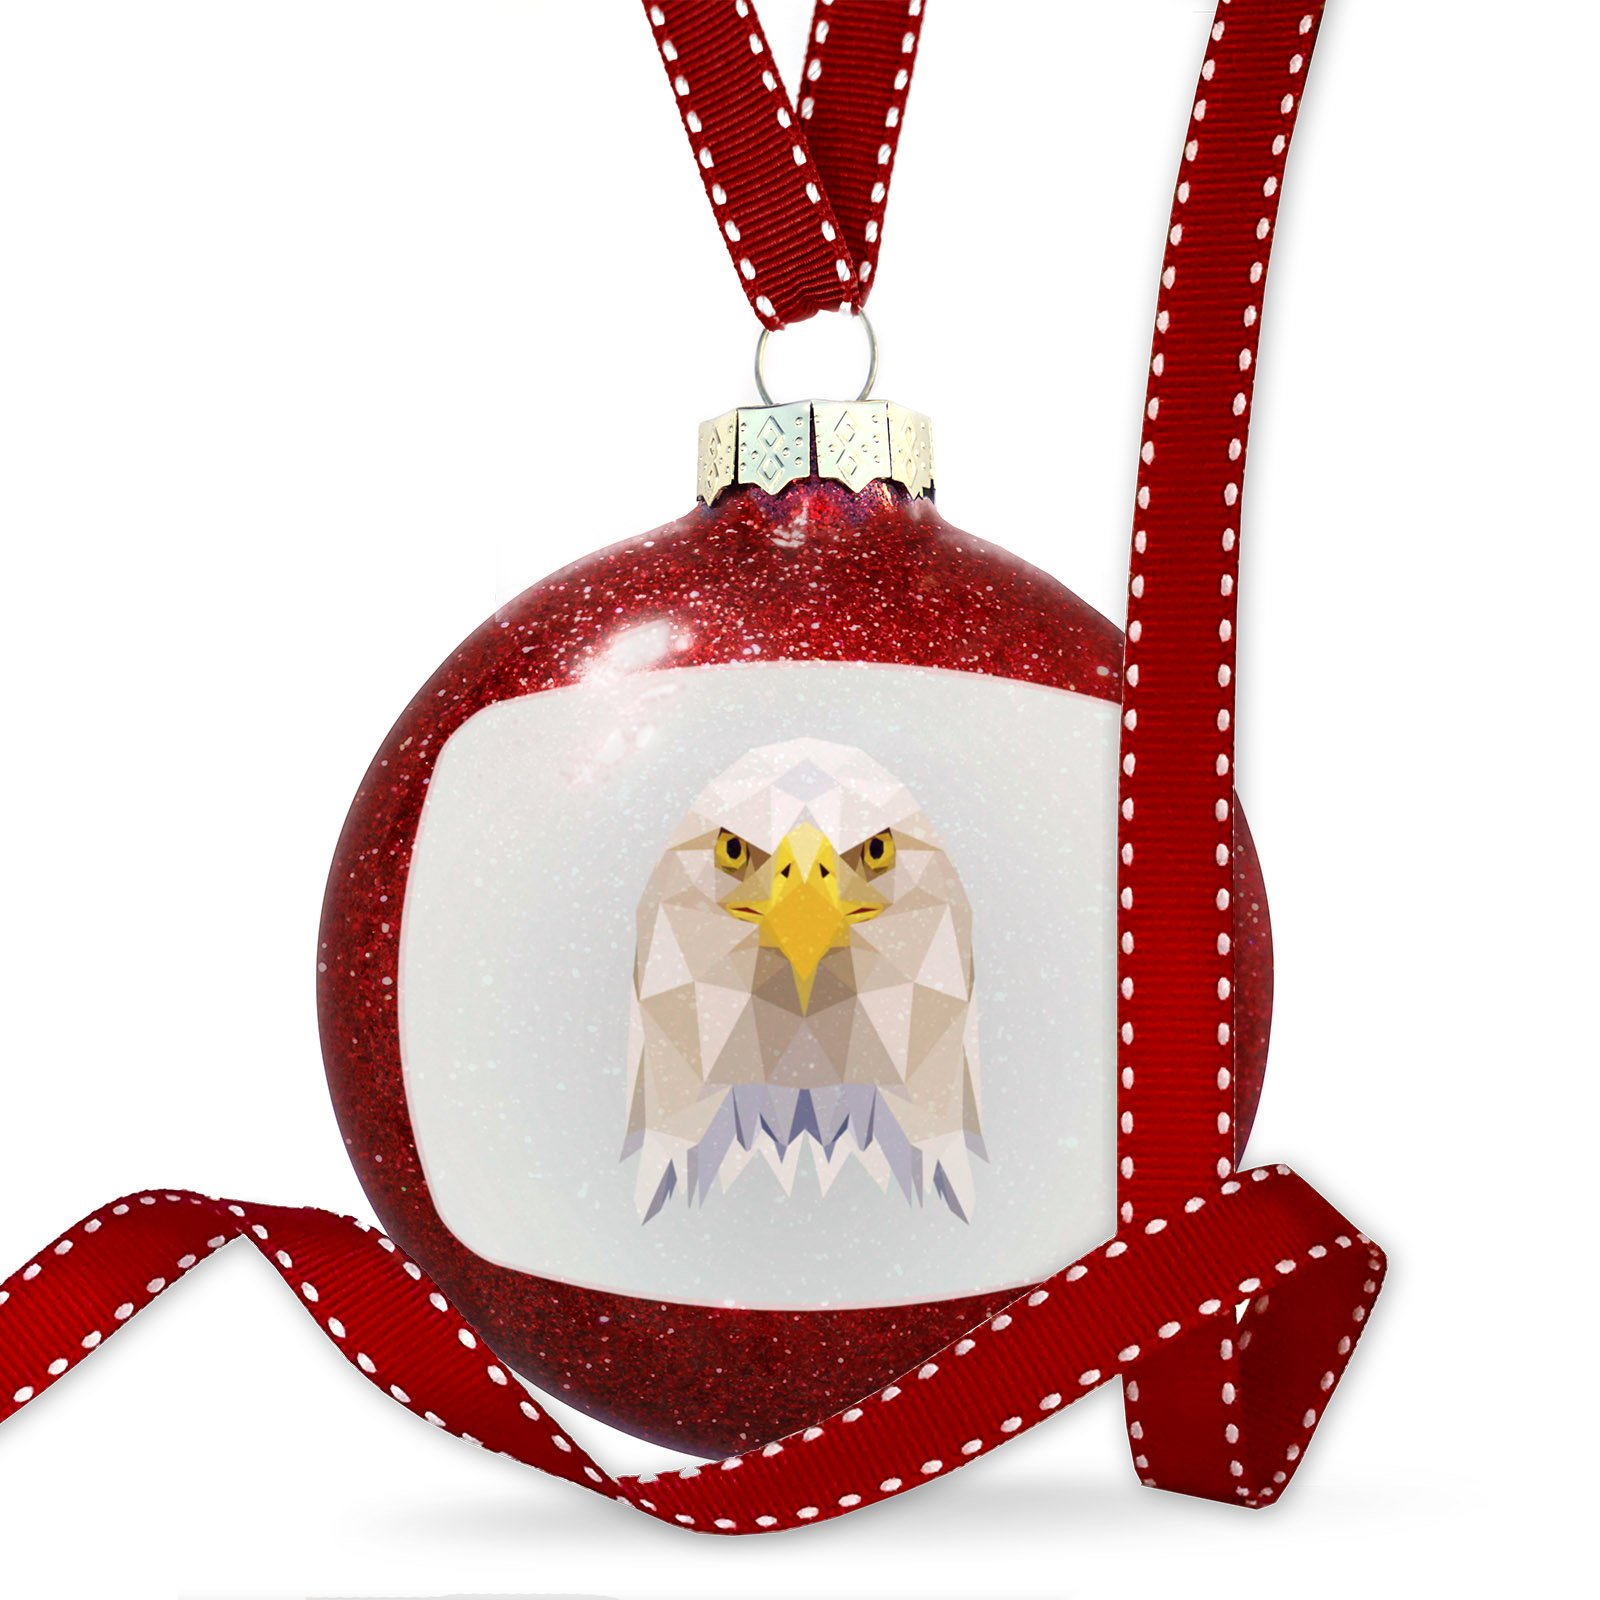 Christmas Decoration Low Poly Animals Modern design Bald Eagle Ornament